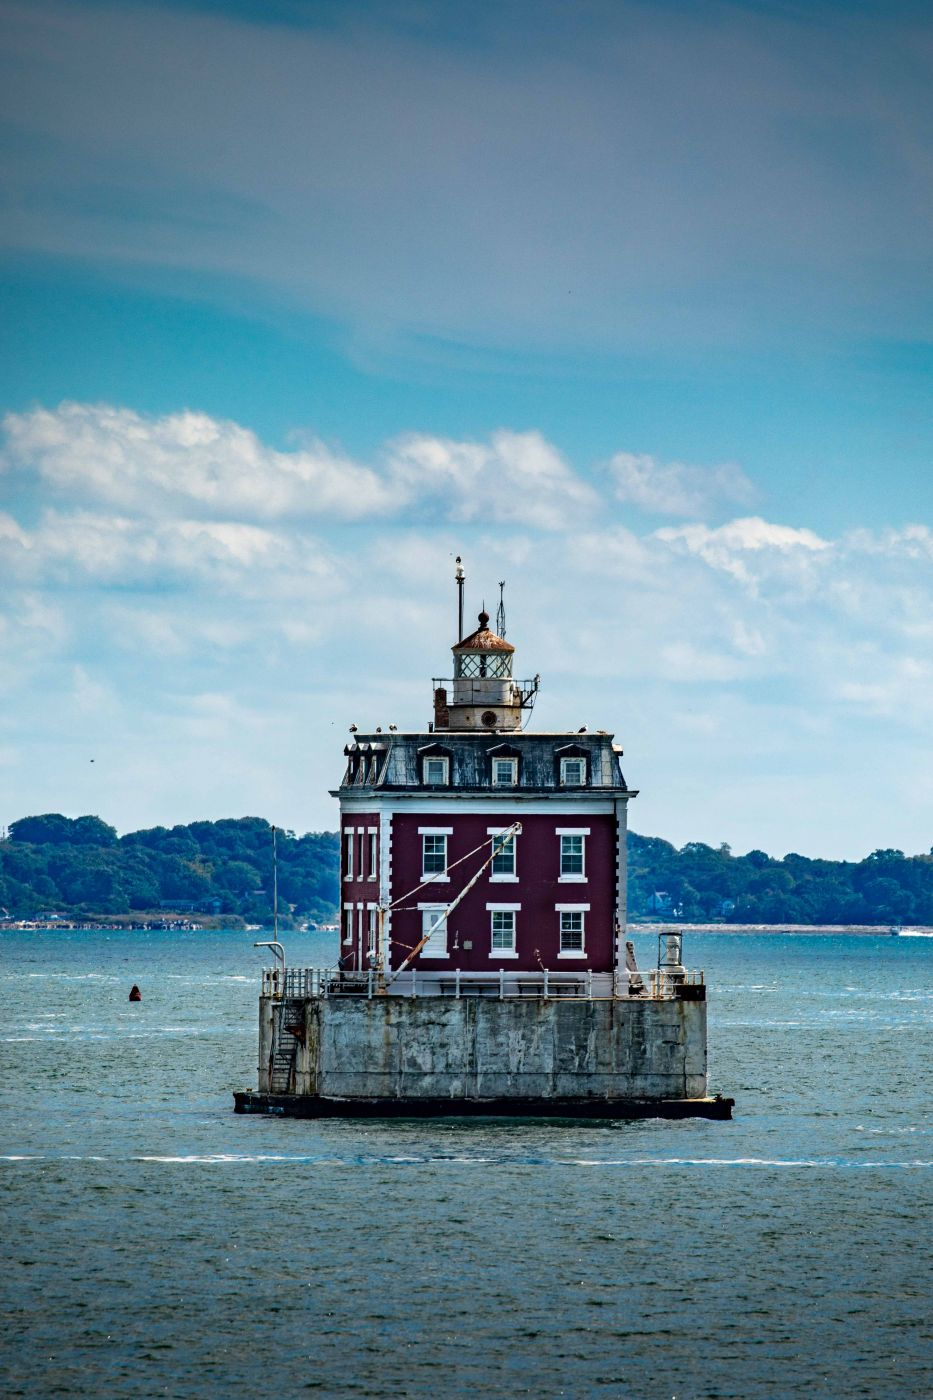 Ledge Lighthouse in New London, Connecticut, USA